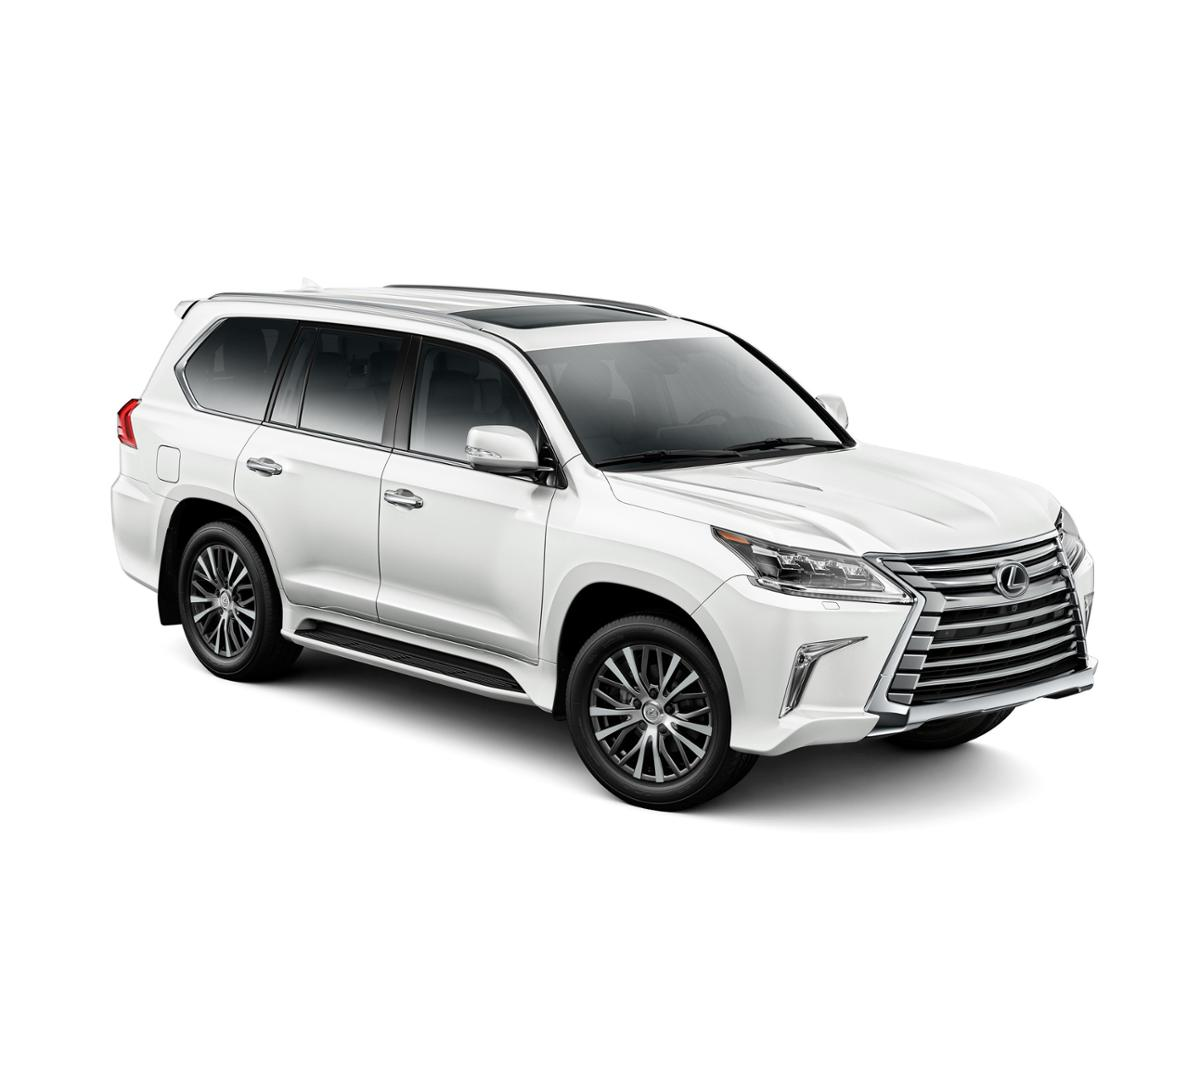 2018 Lexus LX 570 Vehicle Photo in Mission Viejo, CA 92692